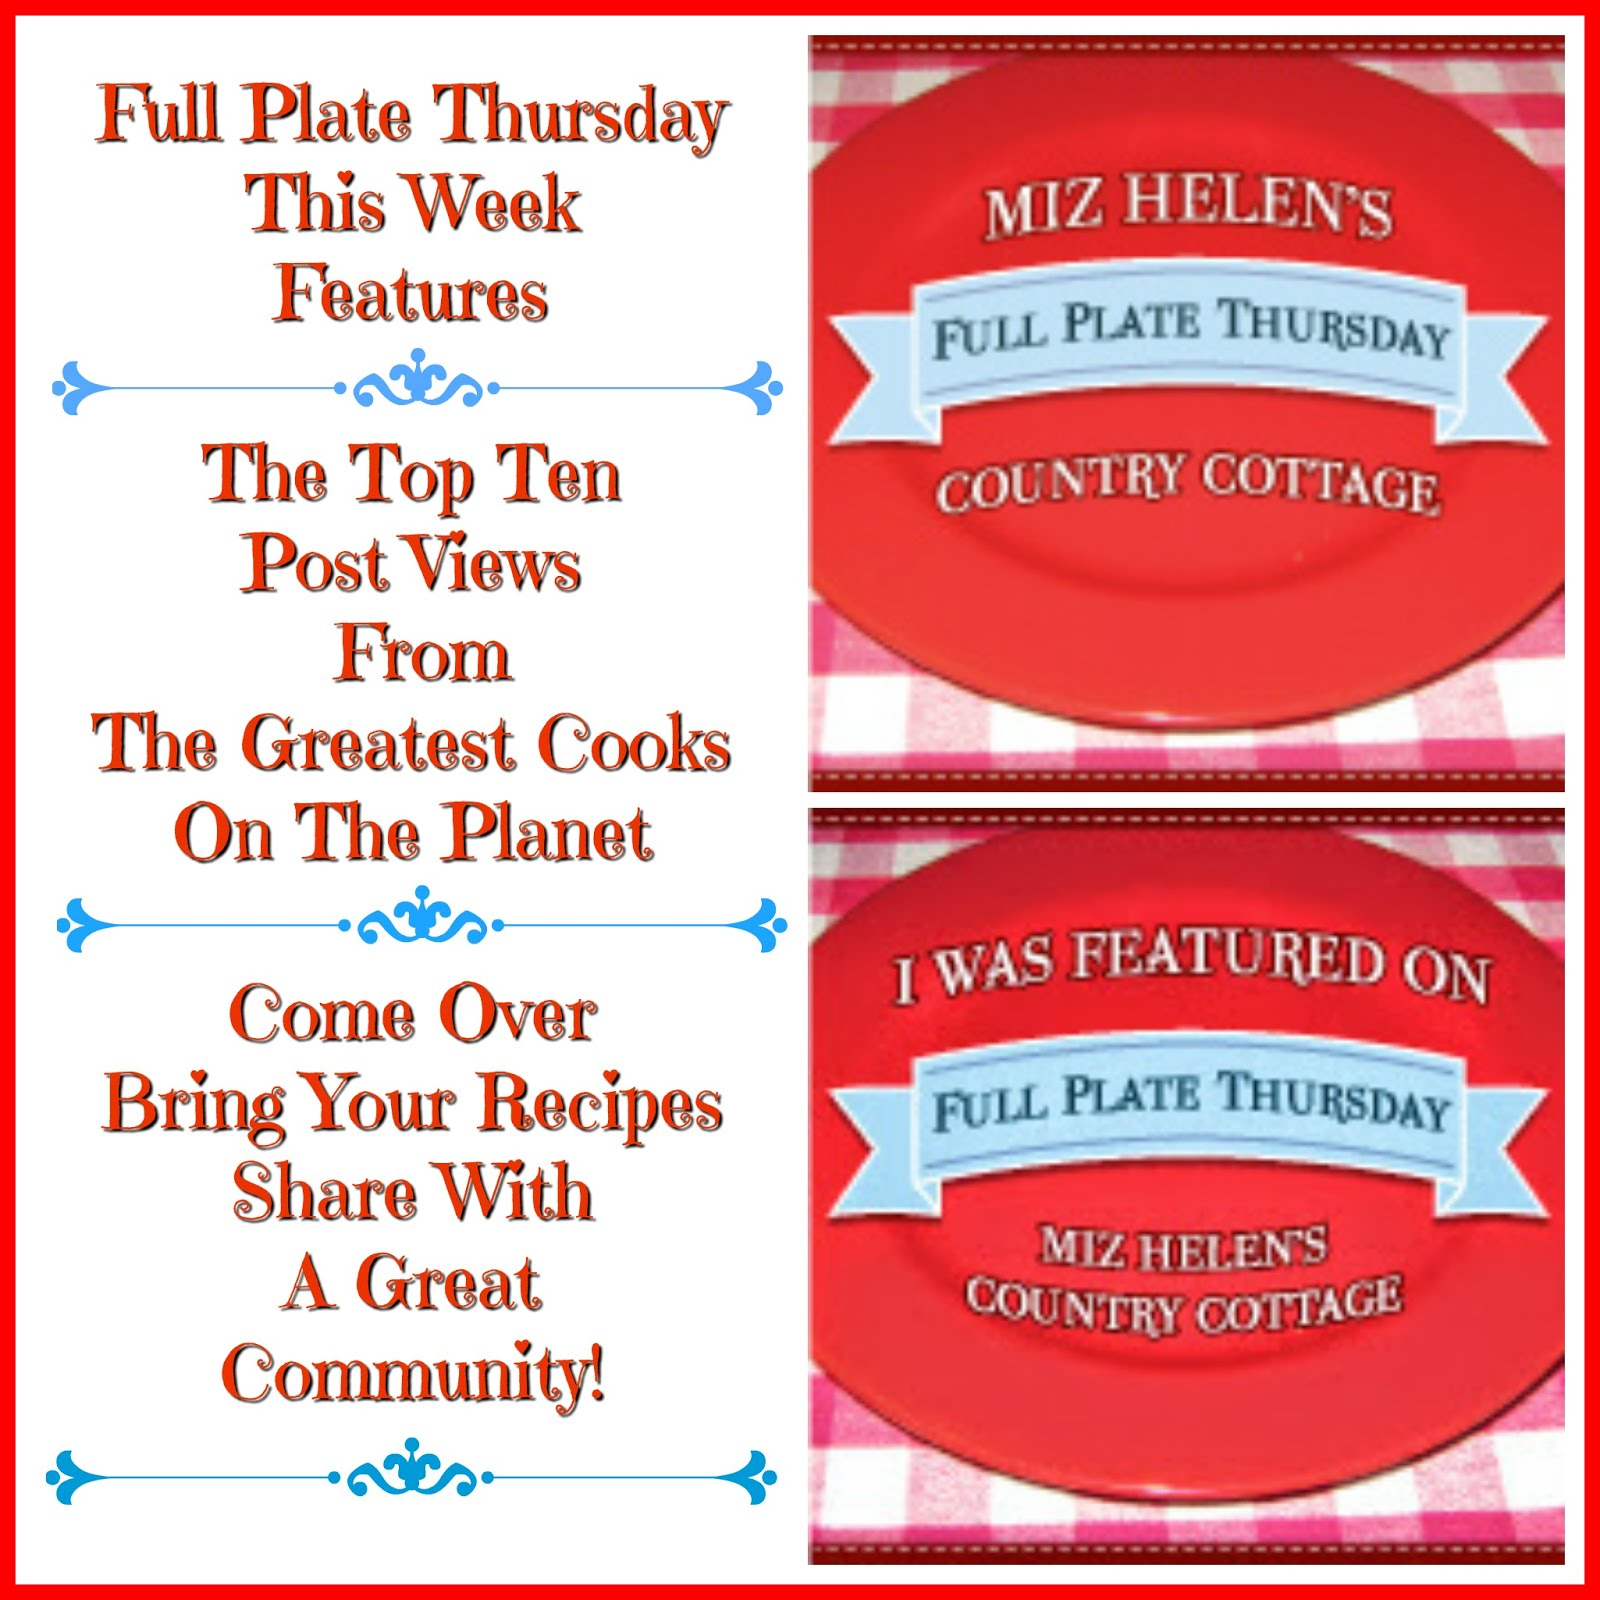 Full Plate Thursday, 531